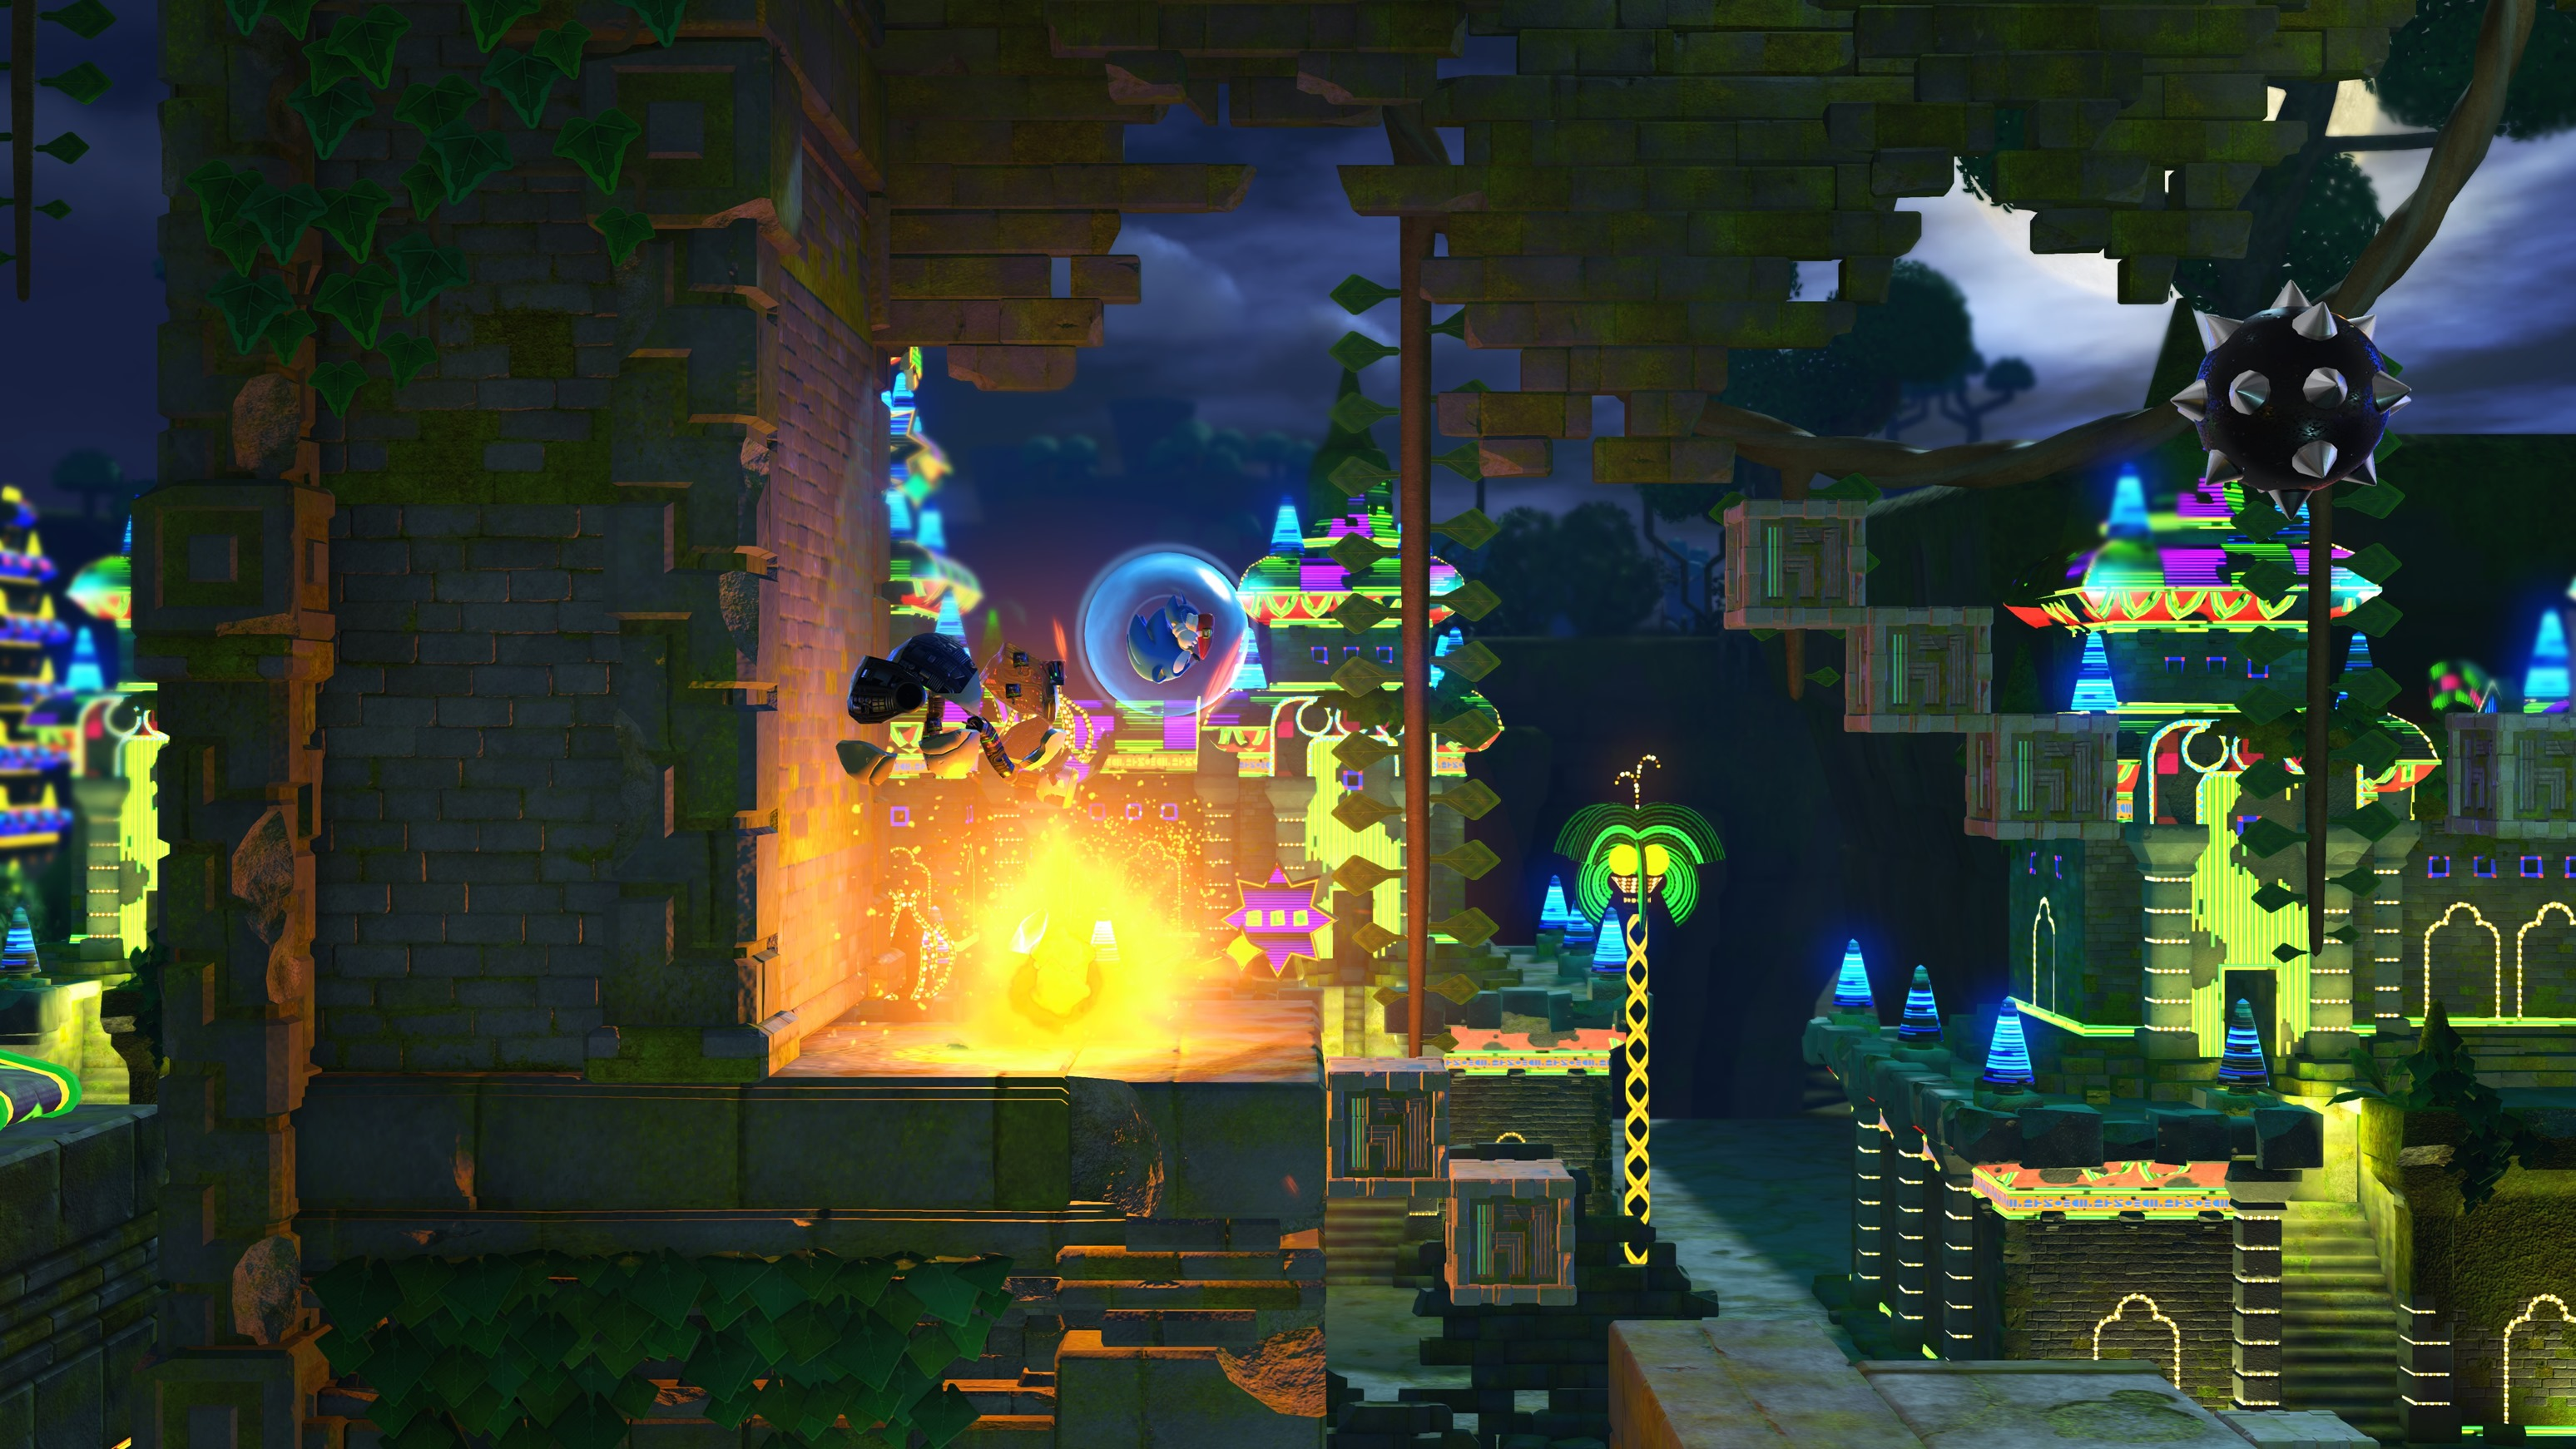 sonic forces gets a new gameplay trailer focusing on a classic sonic stage